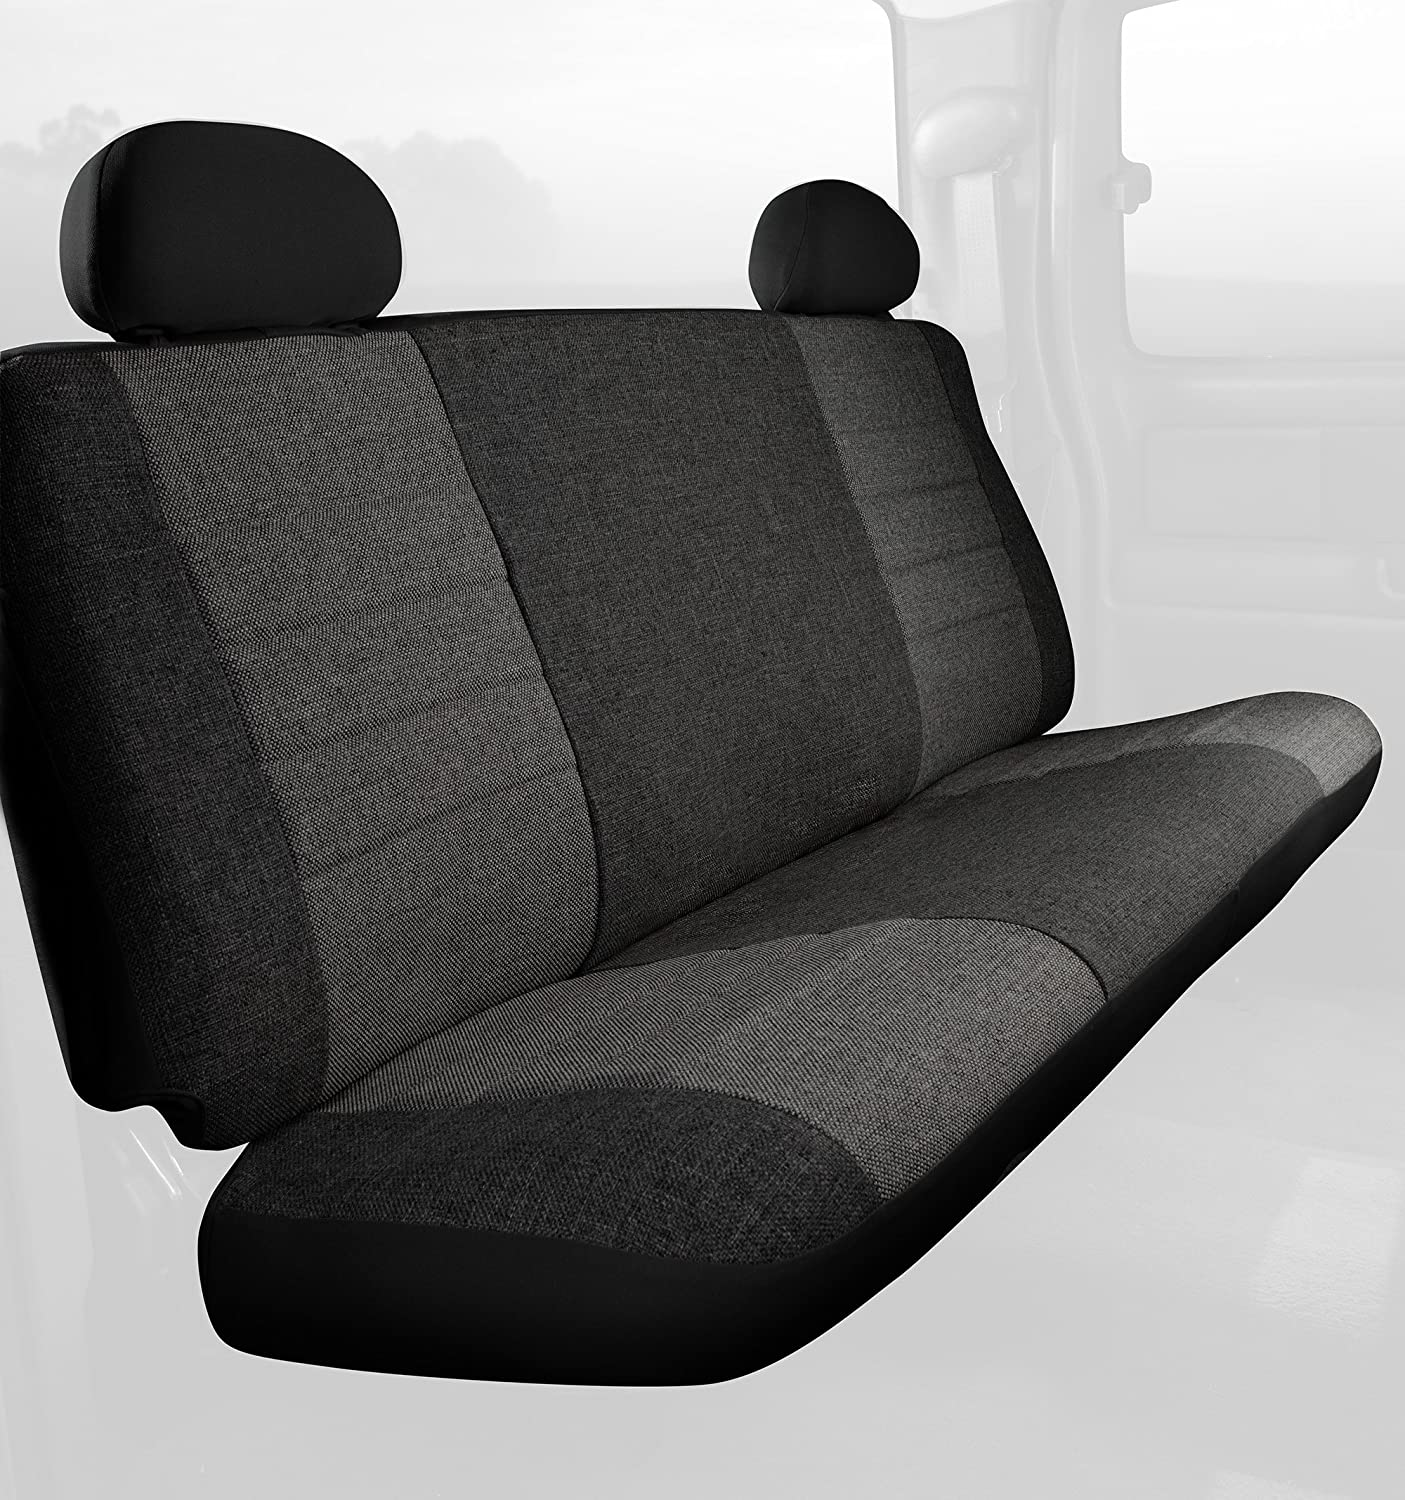 Fia OE32-24 CHARC Custom Fit Rear Seat Cover Split Seat 60//40 Tweed, Charcoal